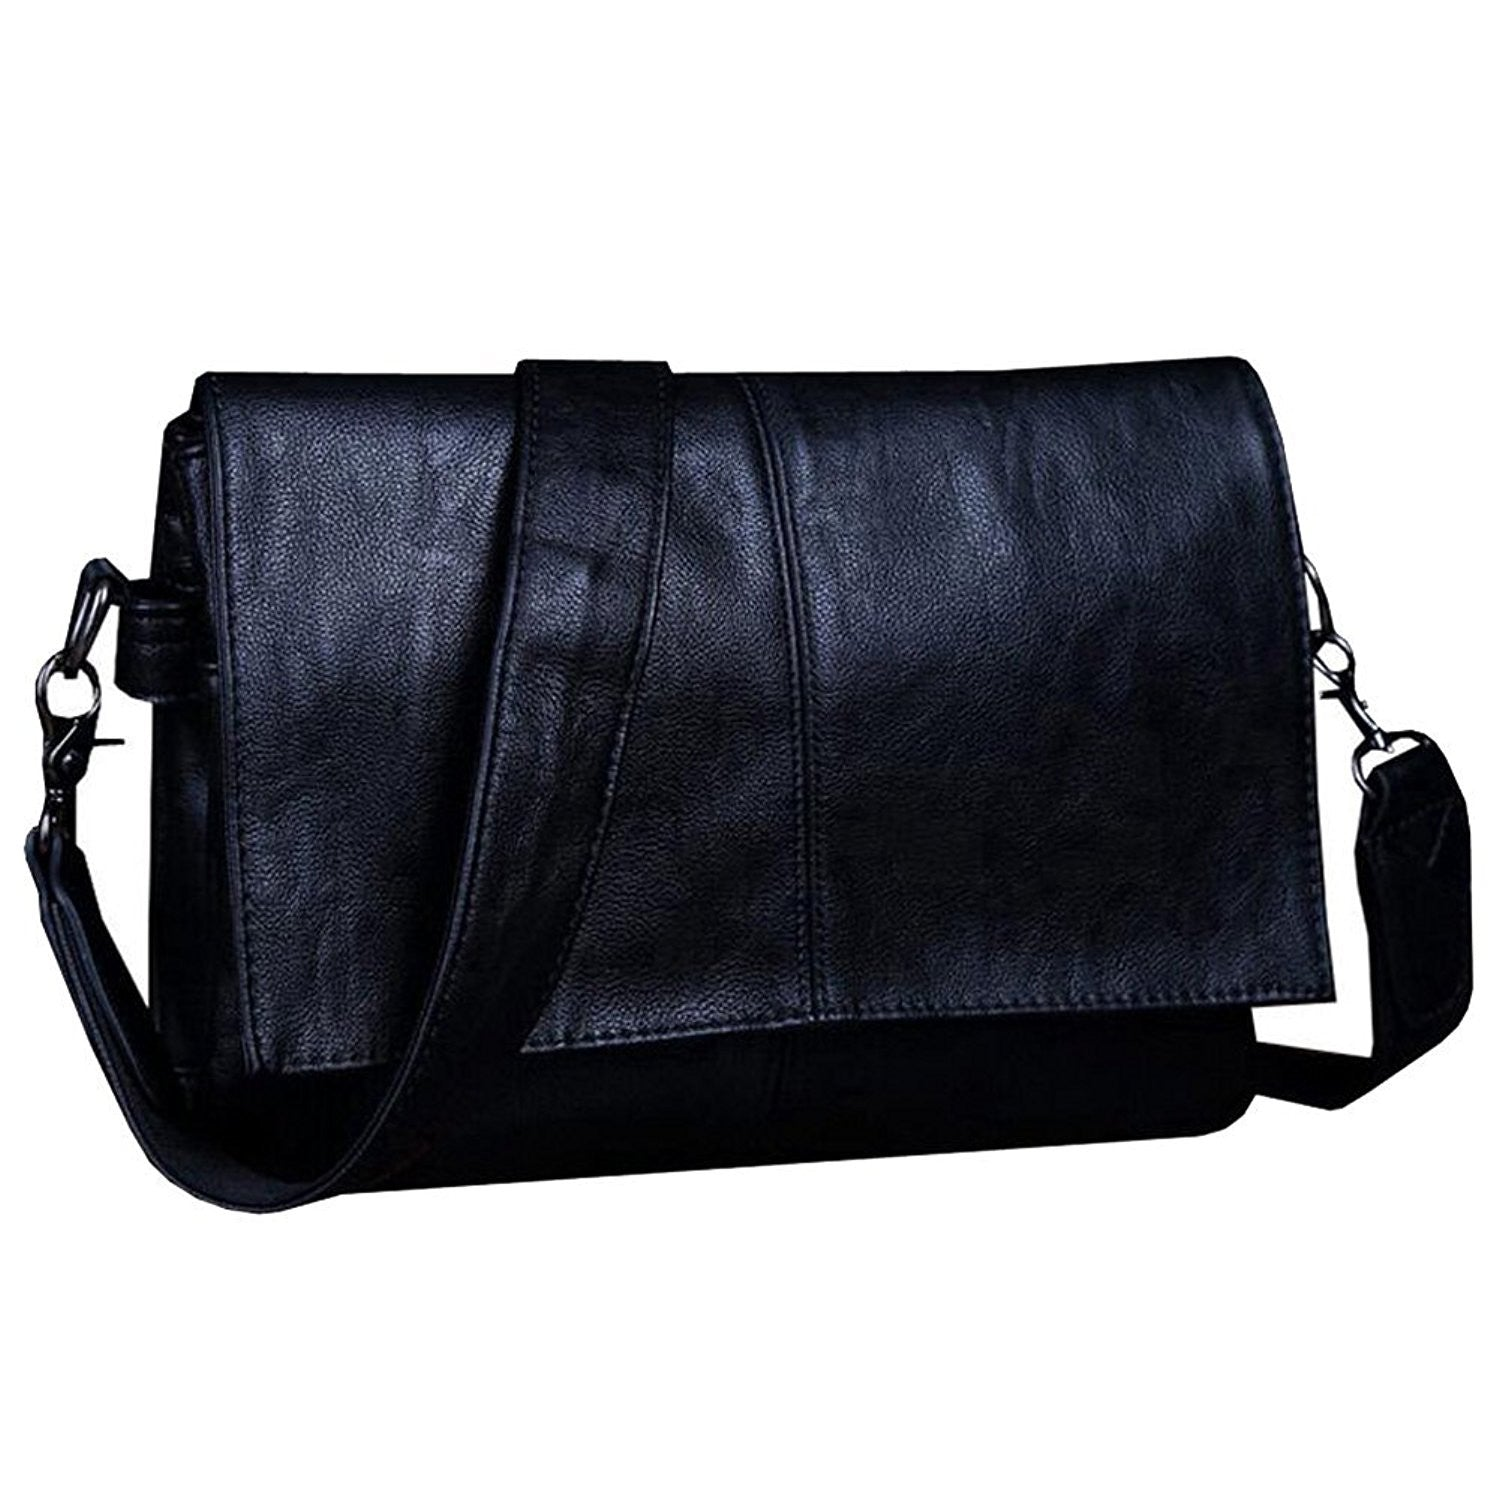 Men Casual Black Leather Luxury Messenger Crossbody Handbag Clutch Shoulder Bag